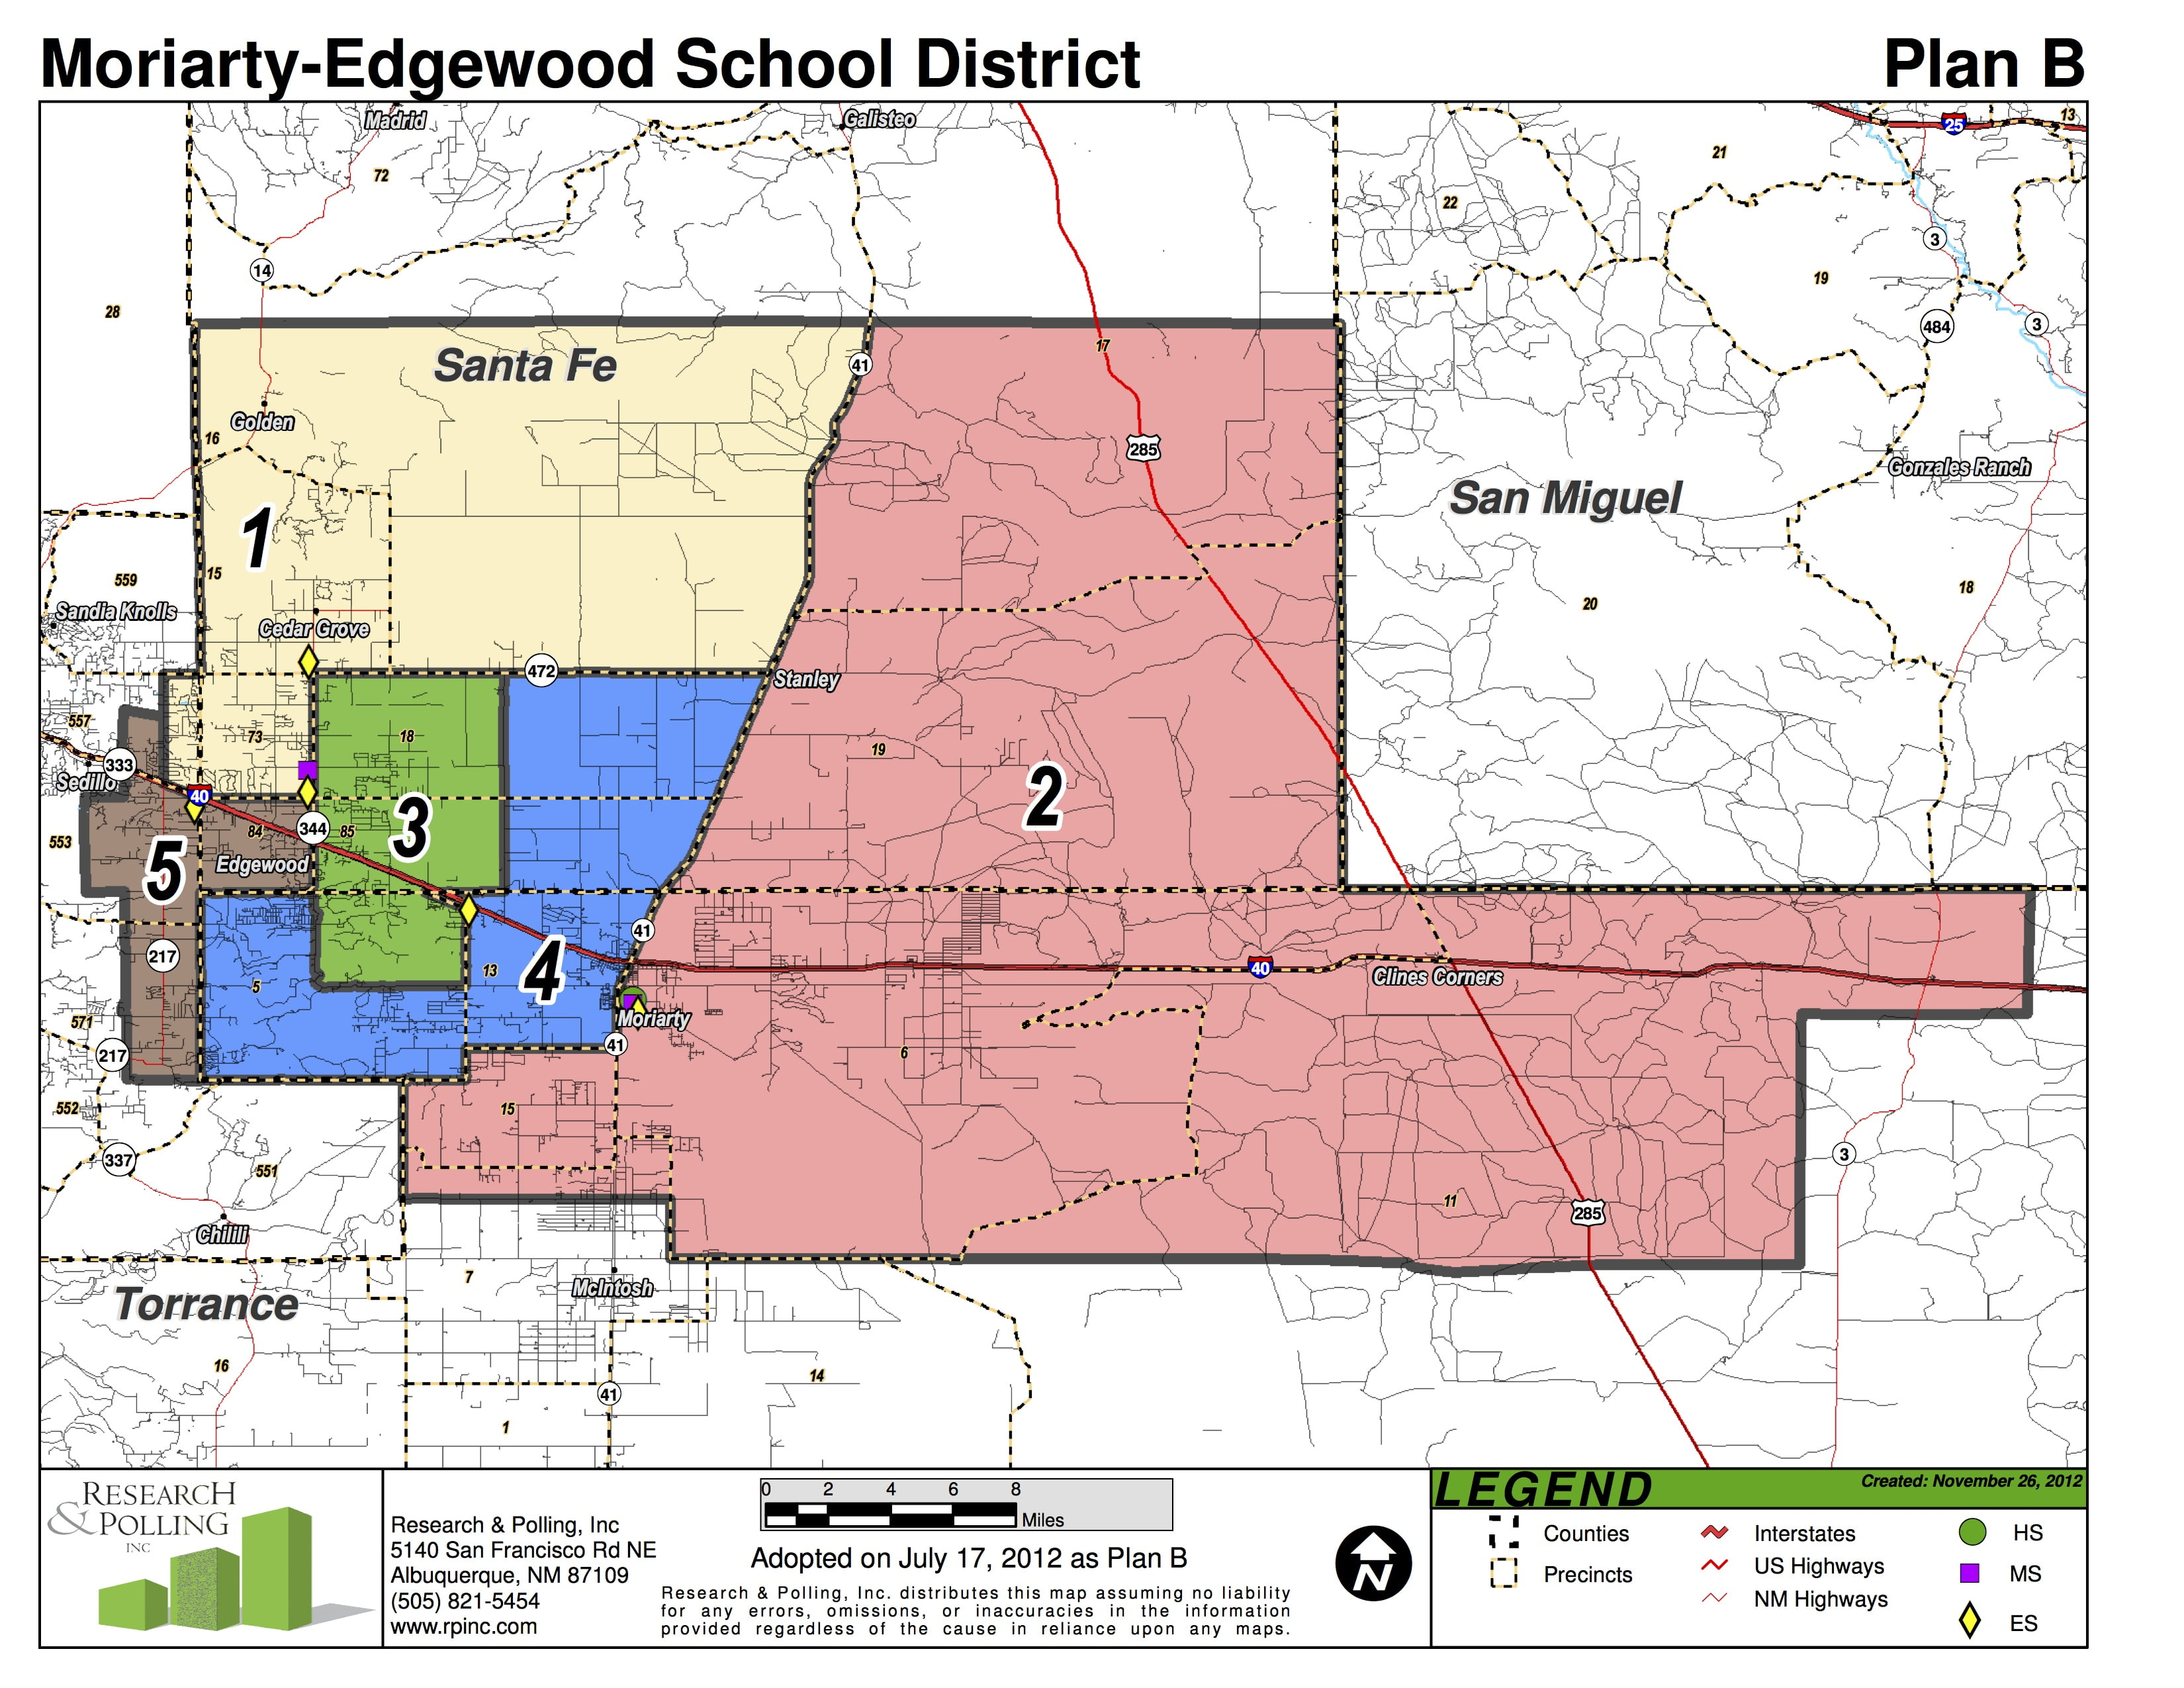 Moriarty-Edgewood School District board vacancy: seeking applicants